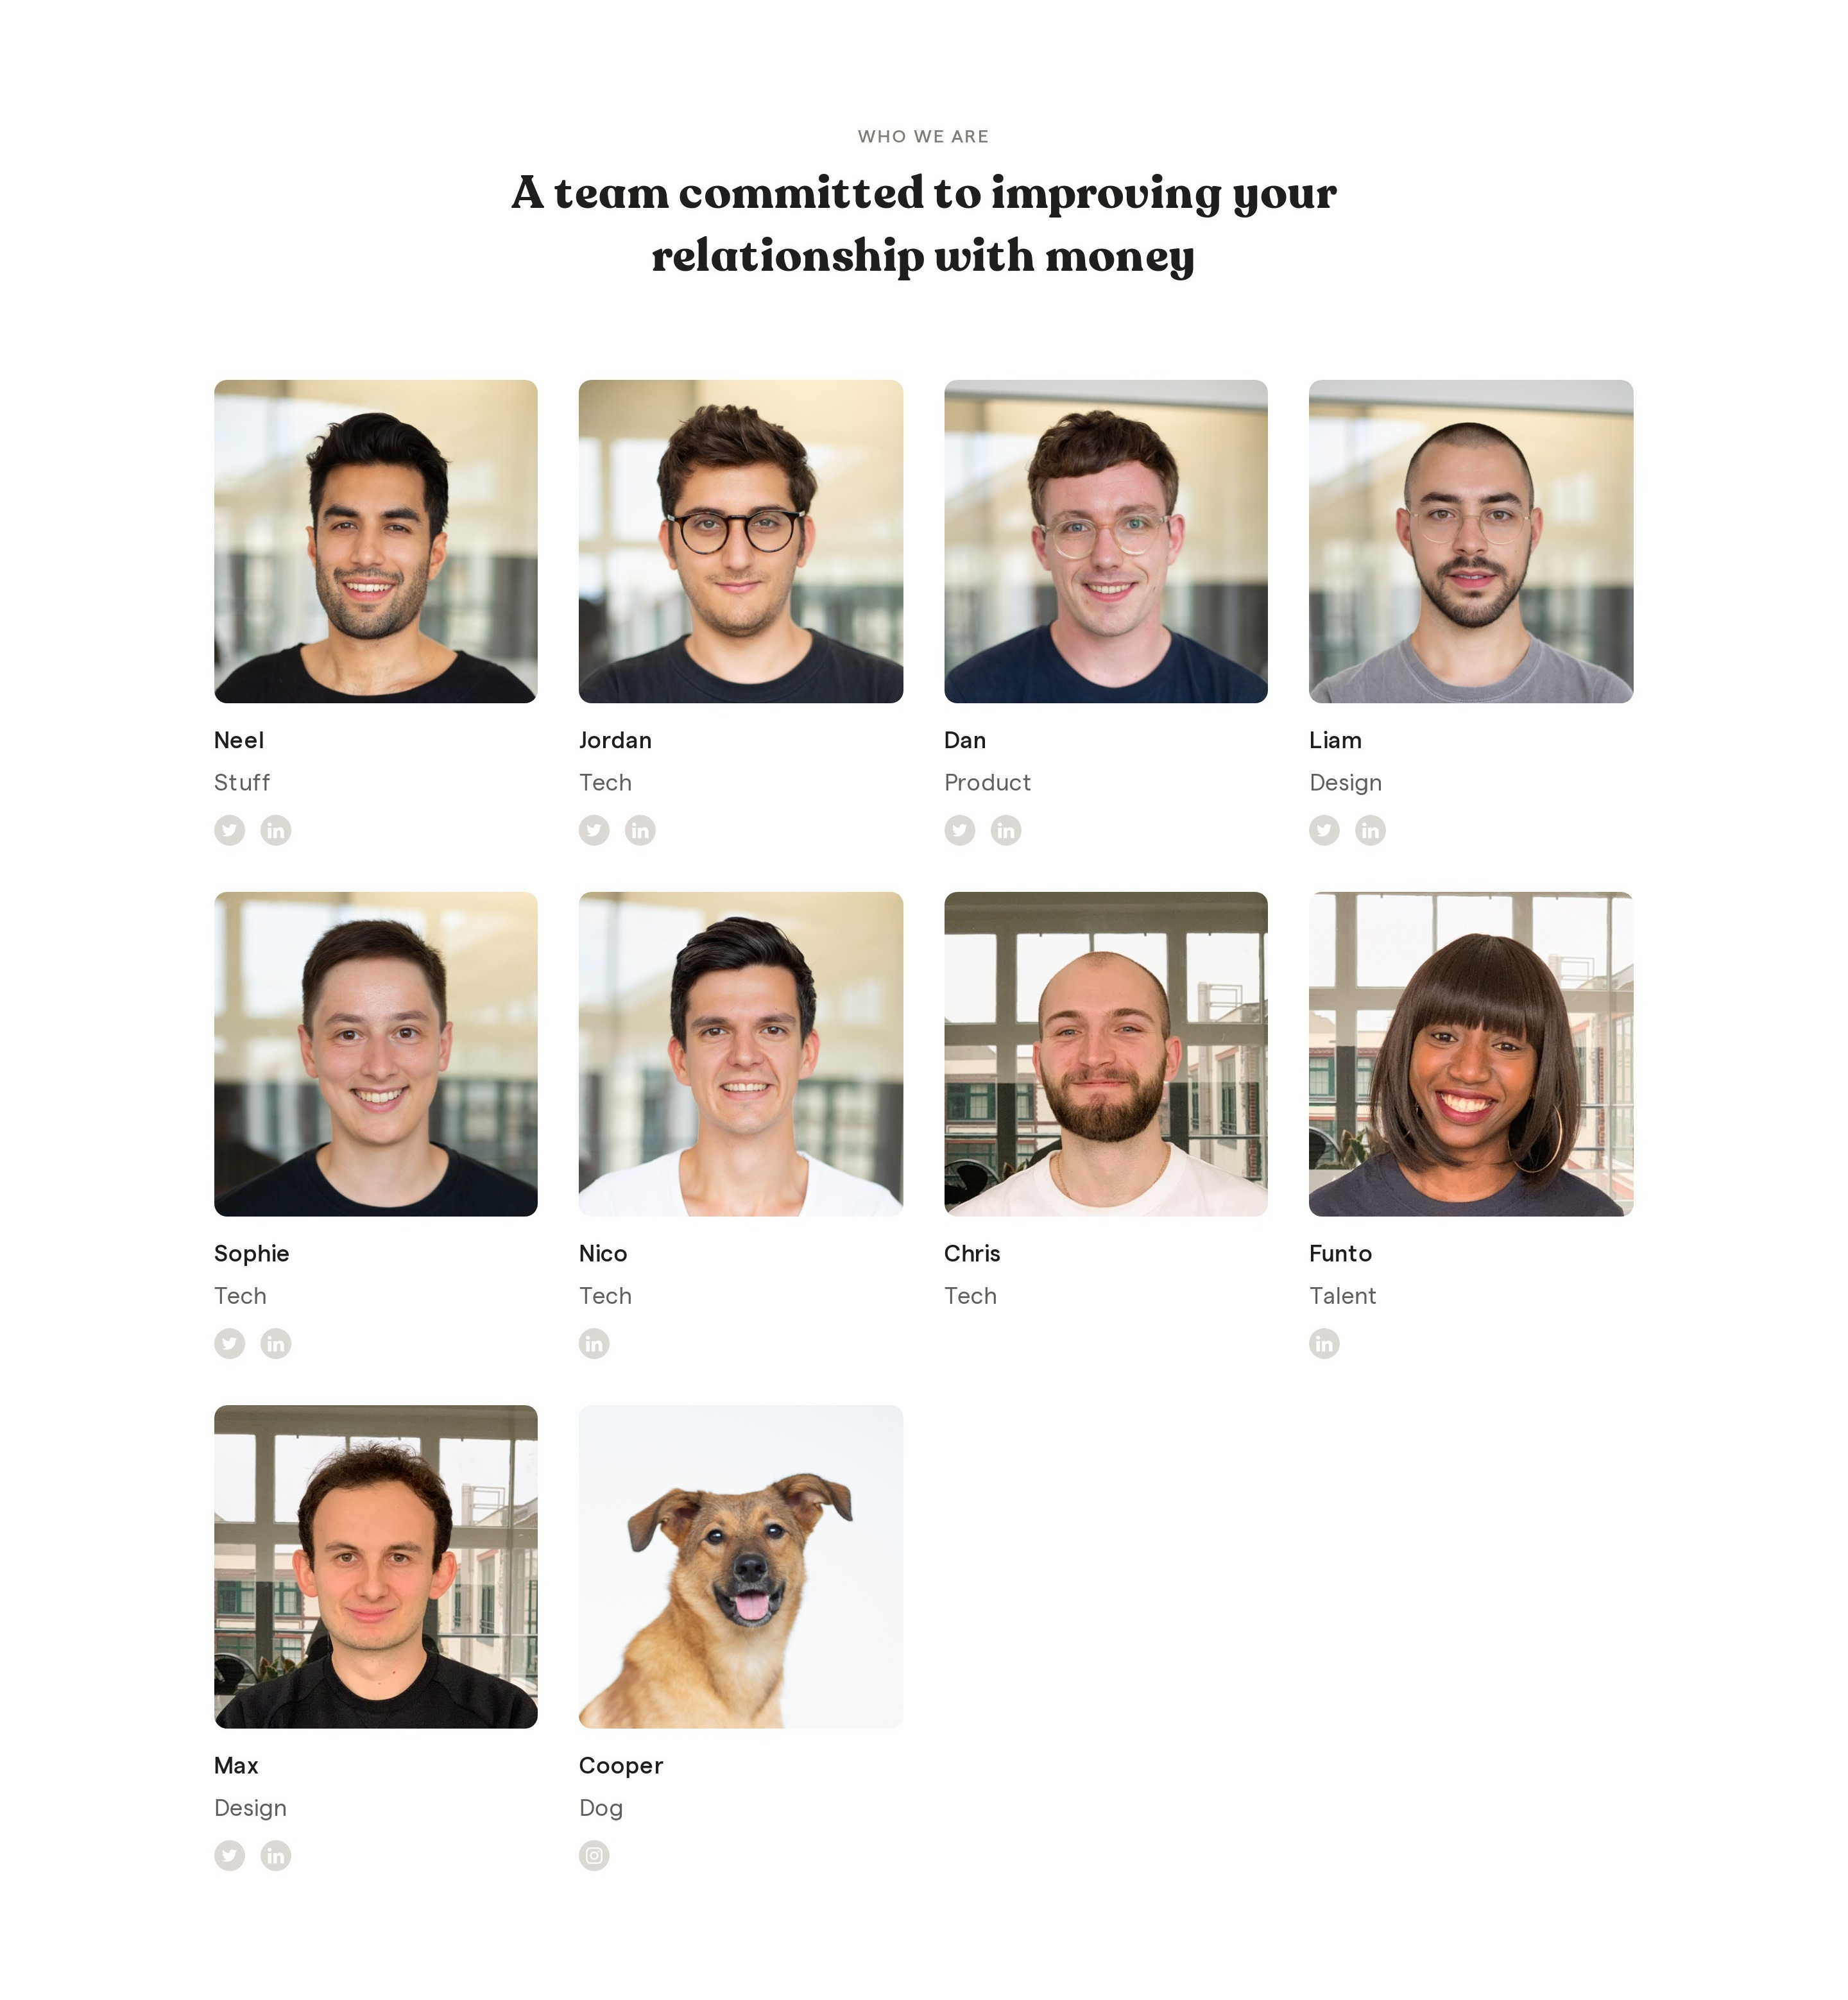 Team Members Grid with Photos